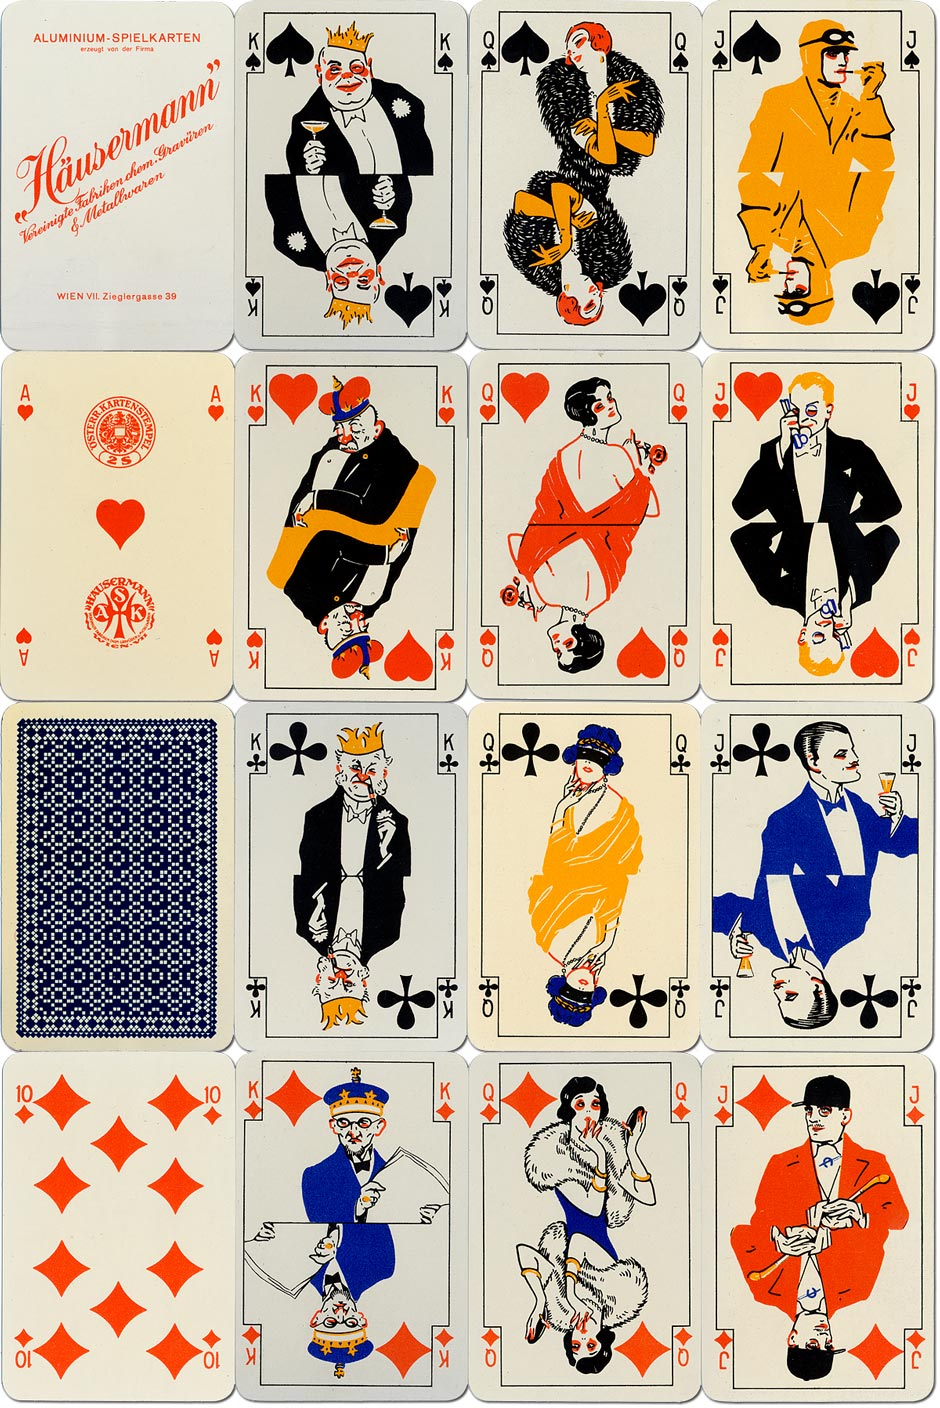 aluminium playing cards manufactured by Häusermann United Chemical and Metal Engraving Co., Vienna, c.1925